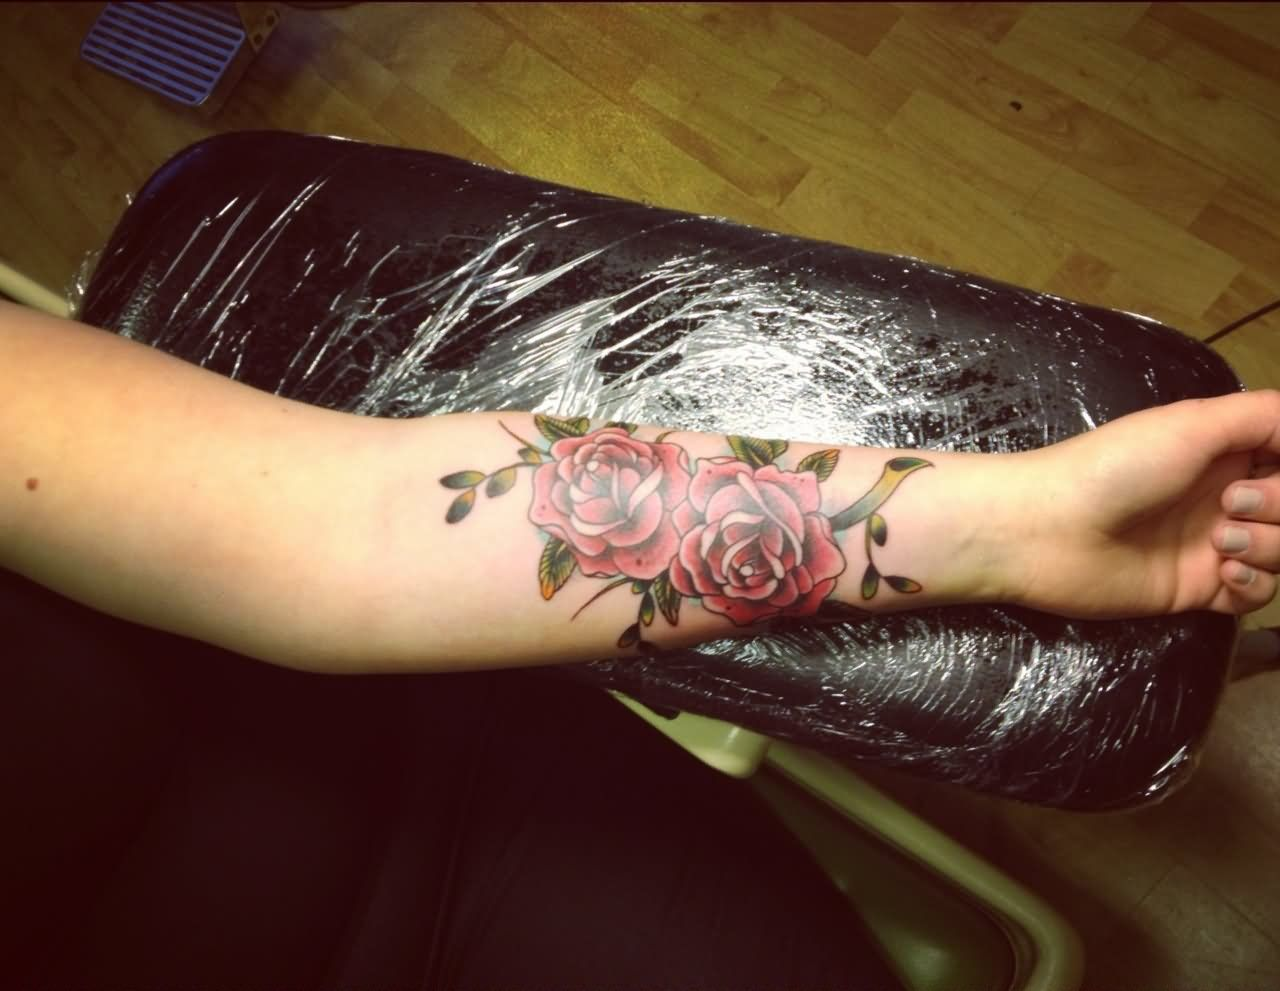 Two Red Roses Tattoo On Left Forearm By Aisha Forearm Tattoo